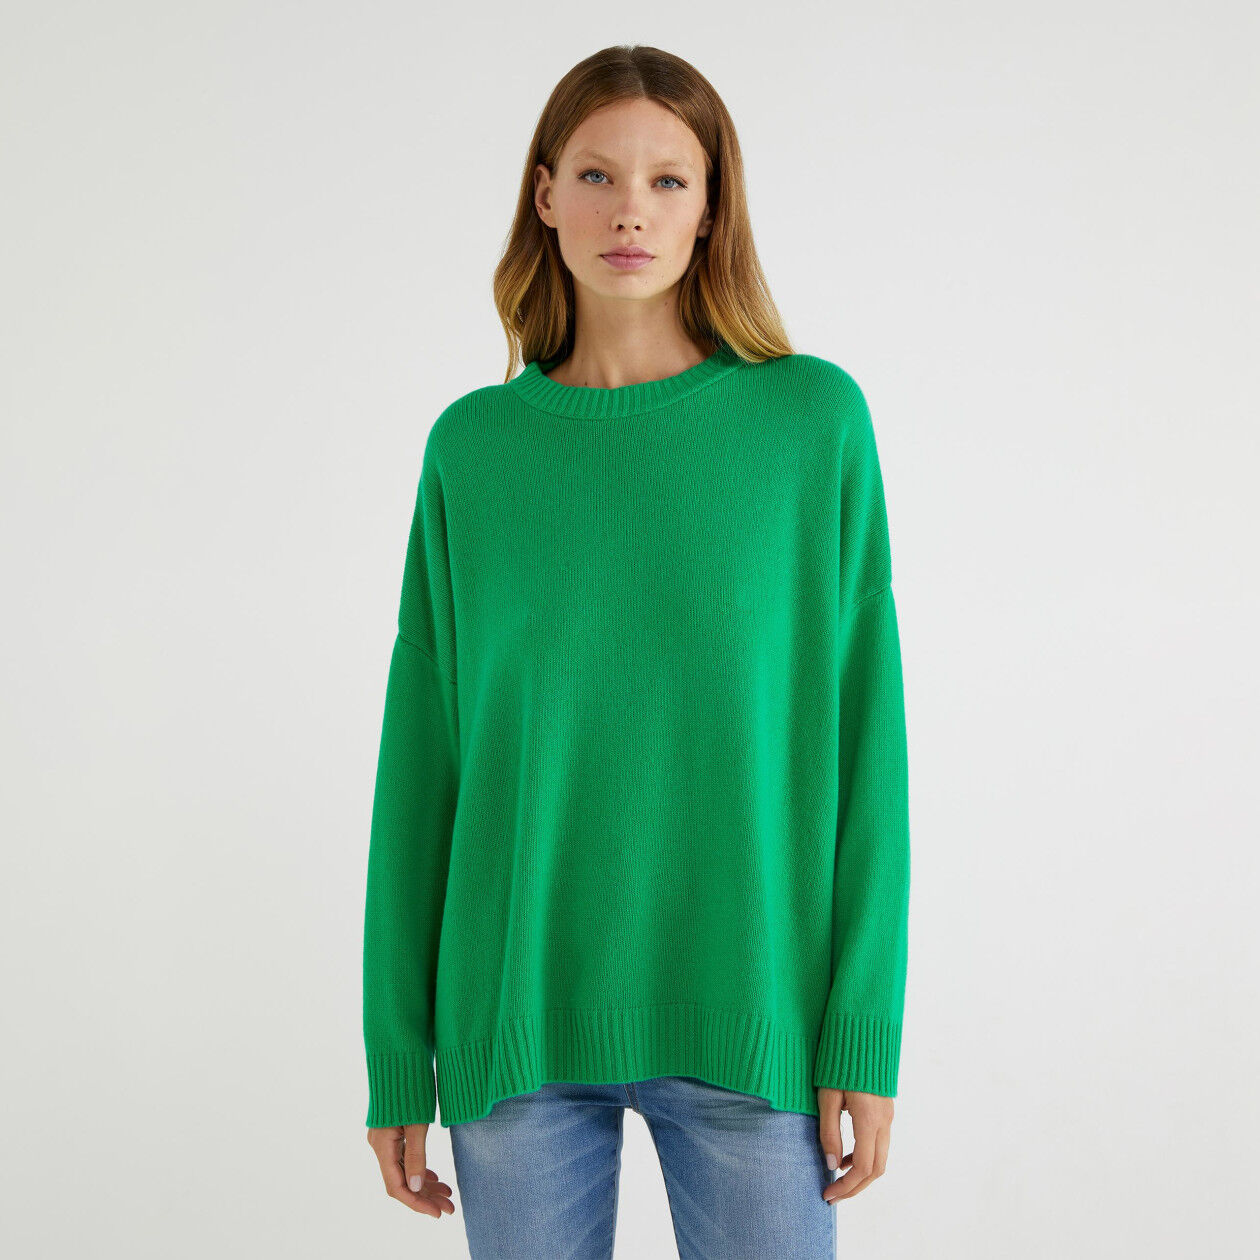 Loose sweater with slits